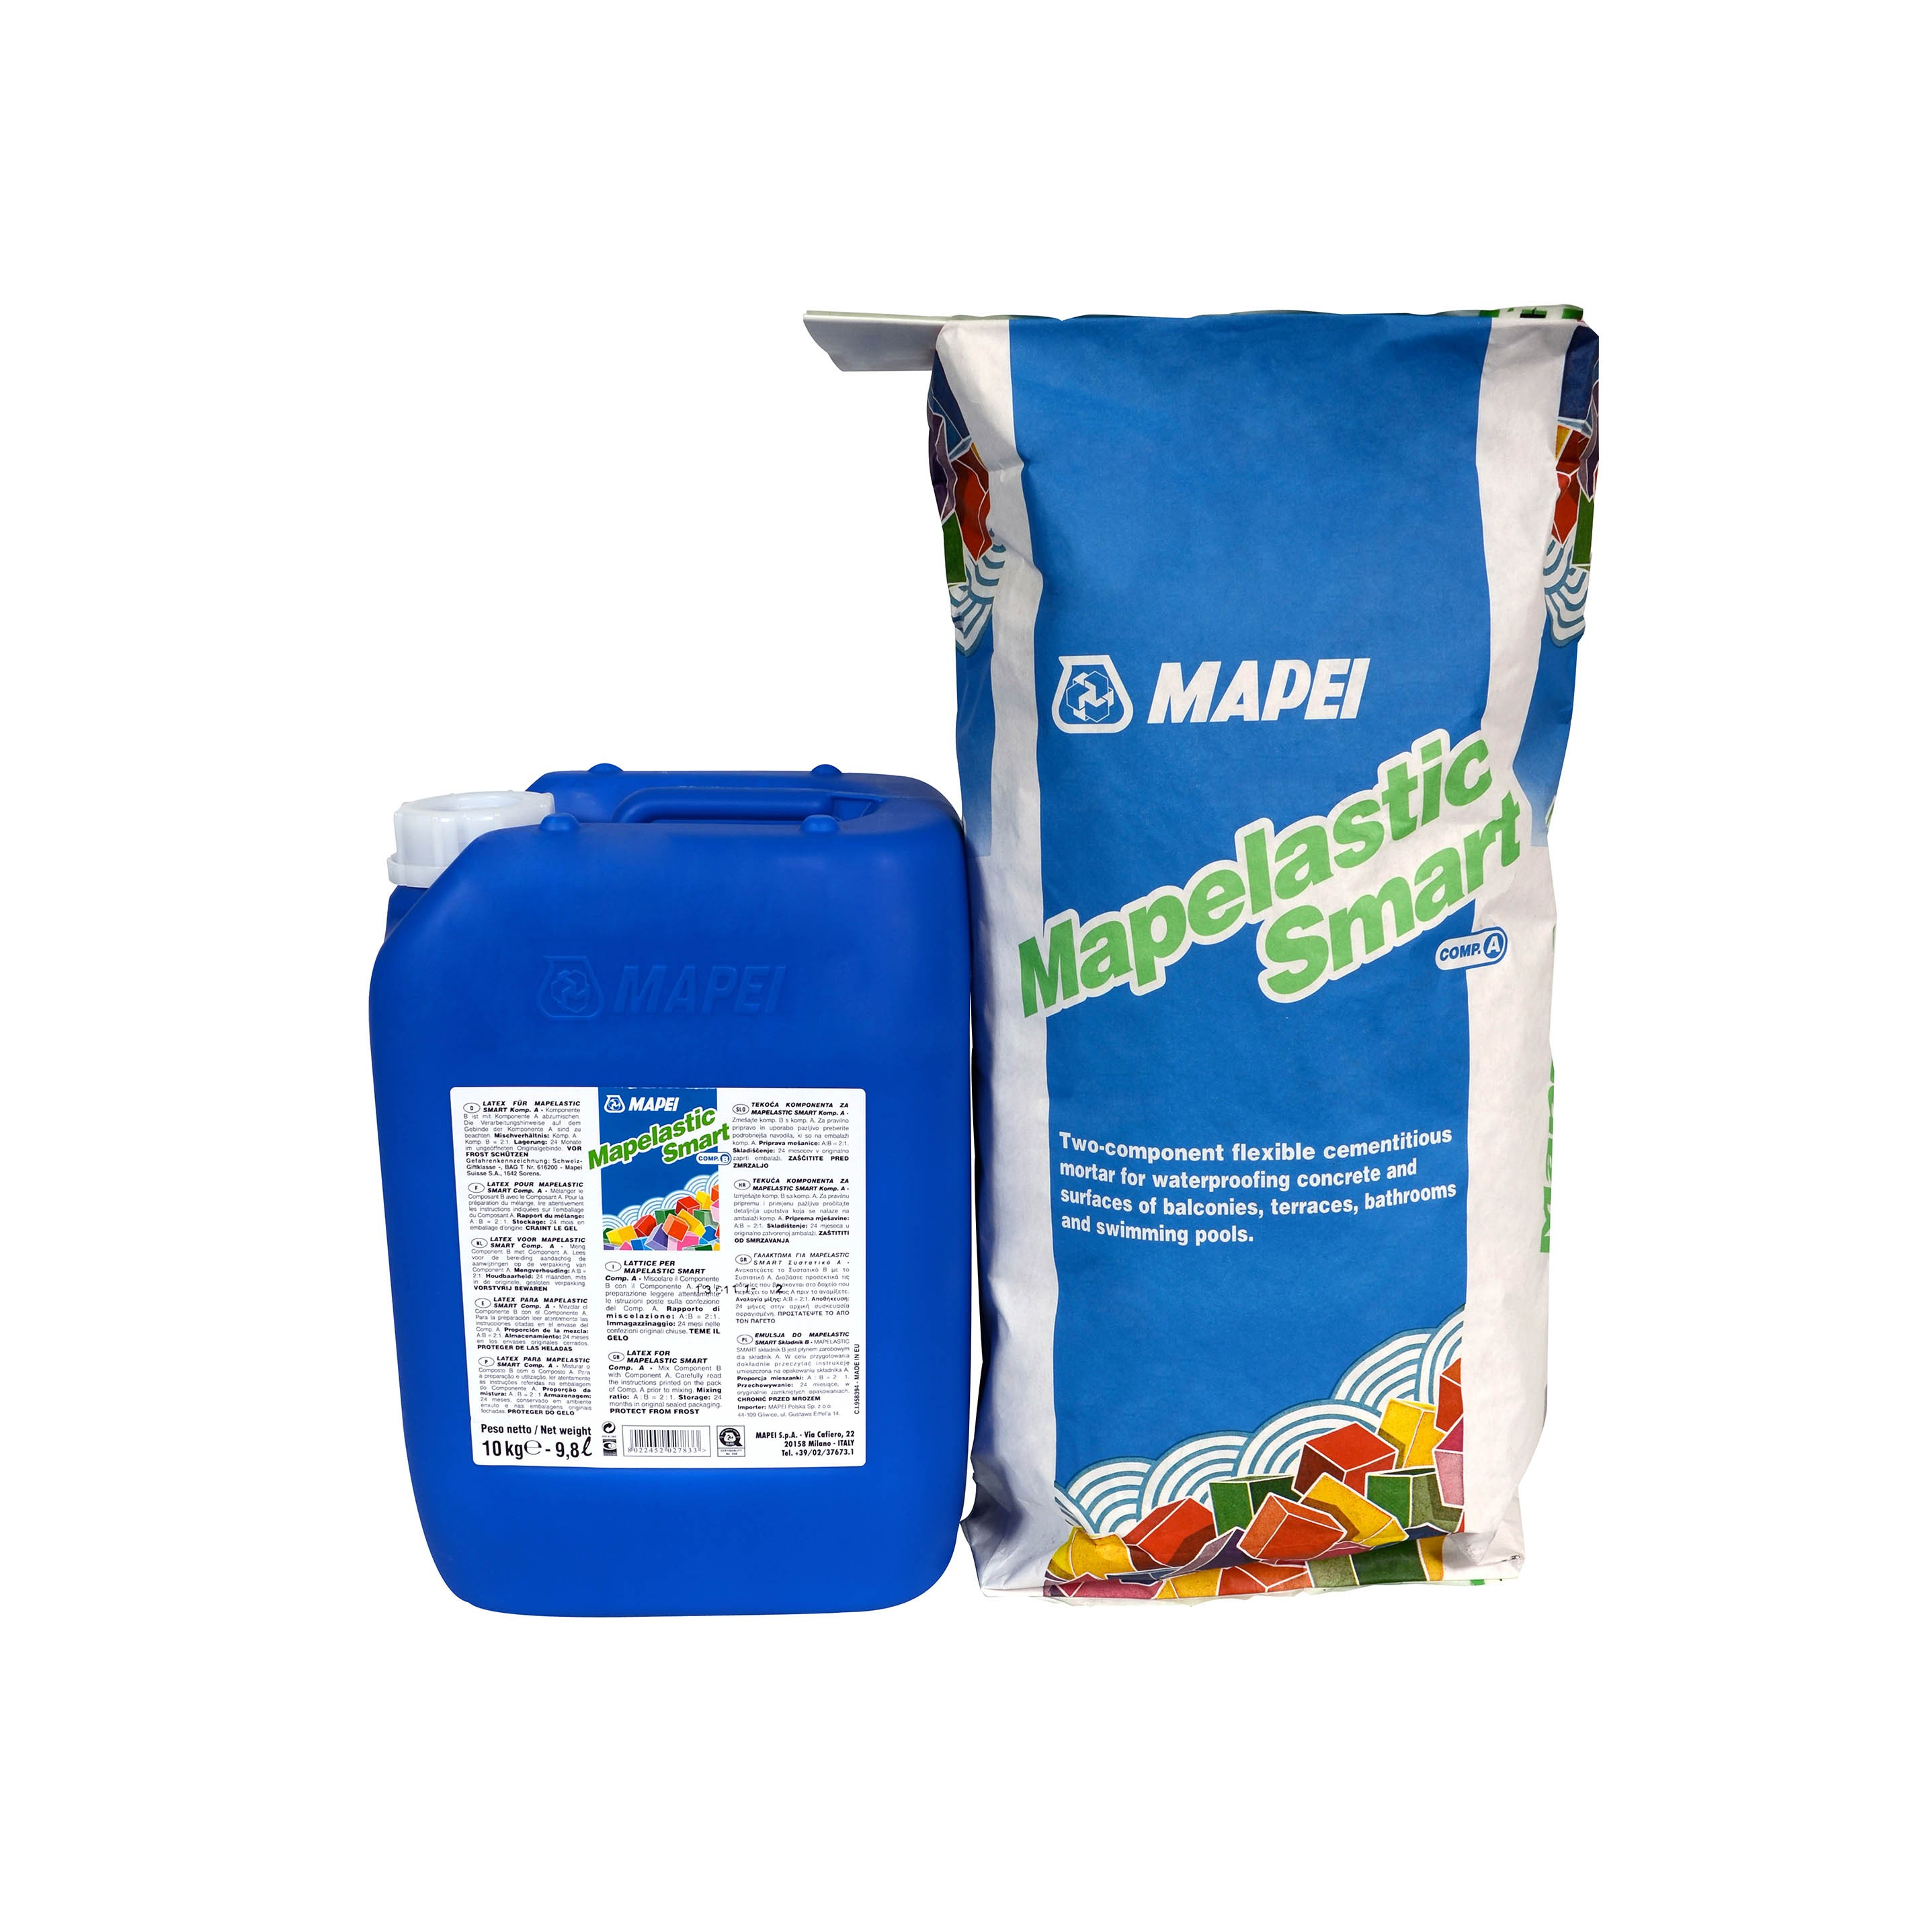 Install-Products-Photos Fixing-Products Gallery Mapei-Mapelastic-Smart-Gallery